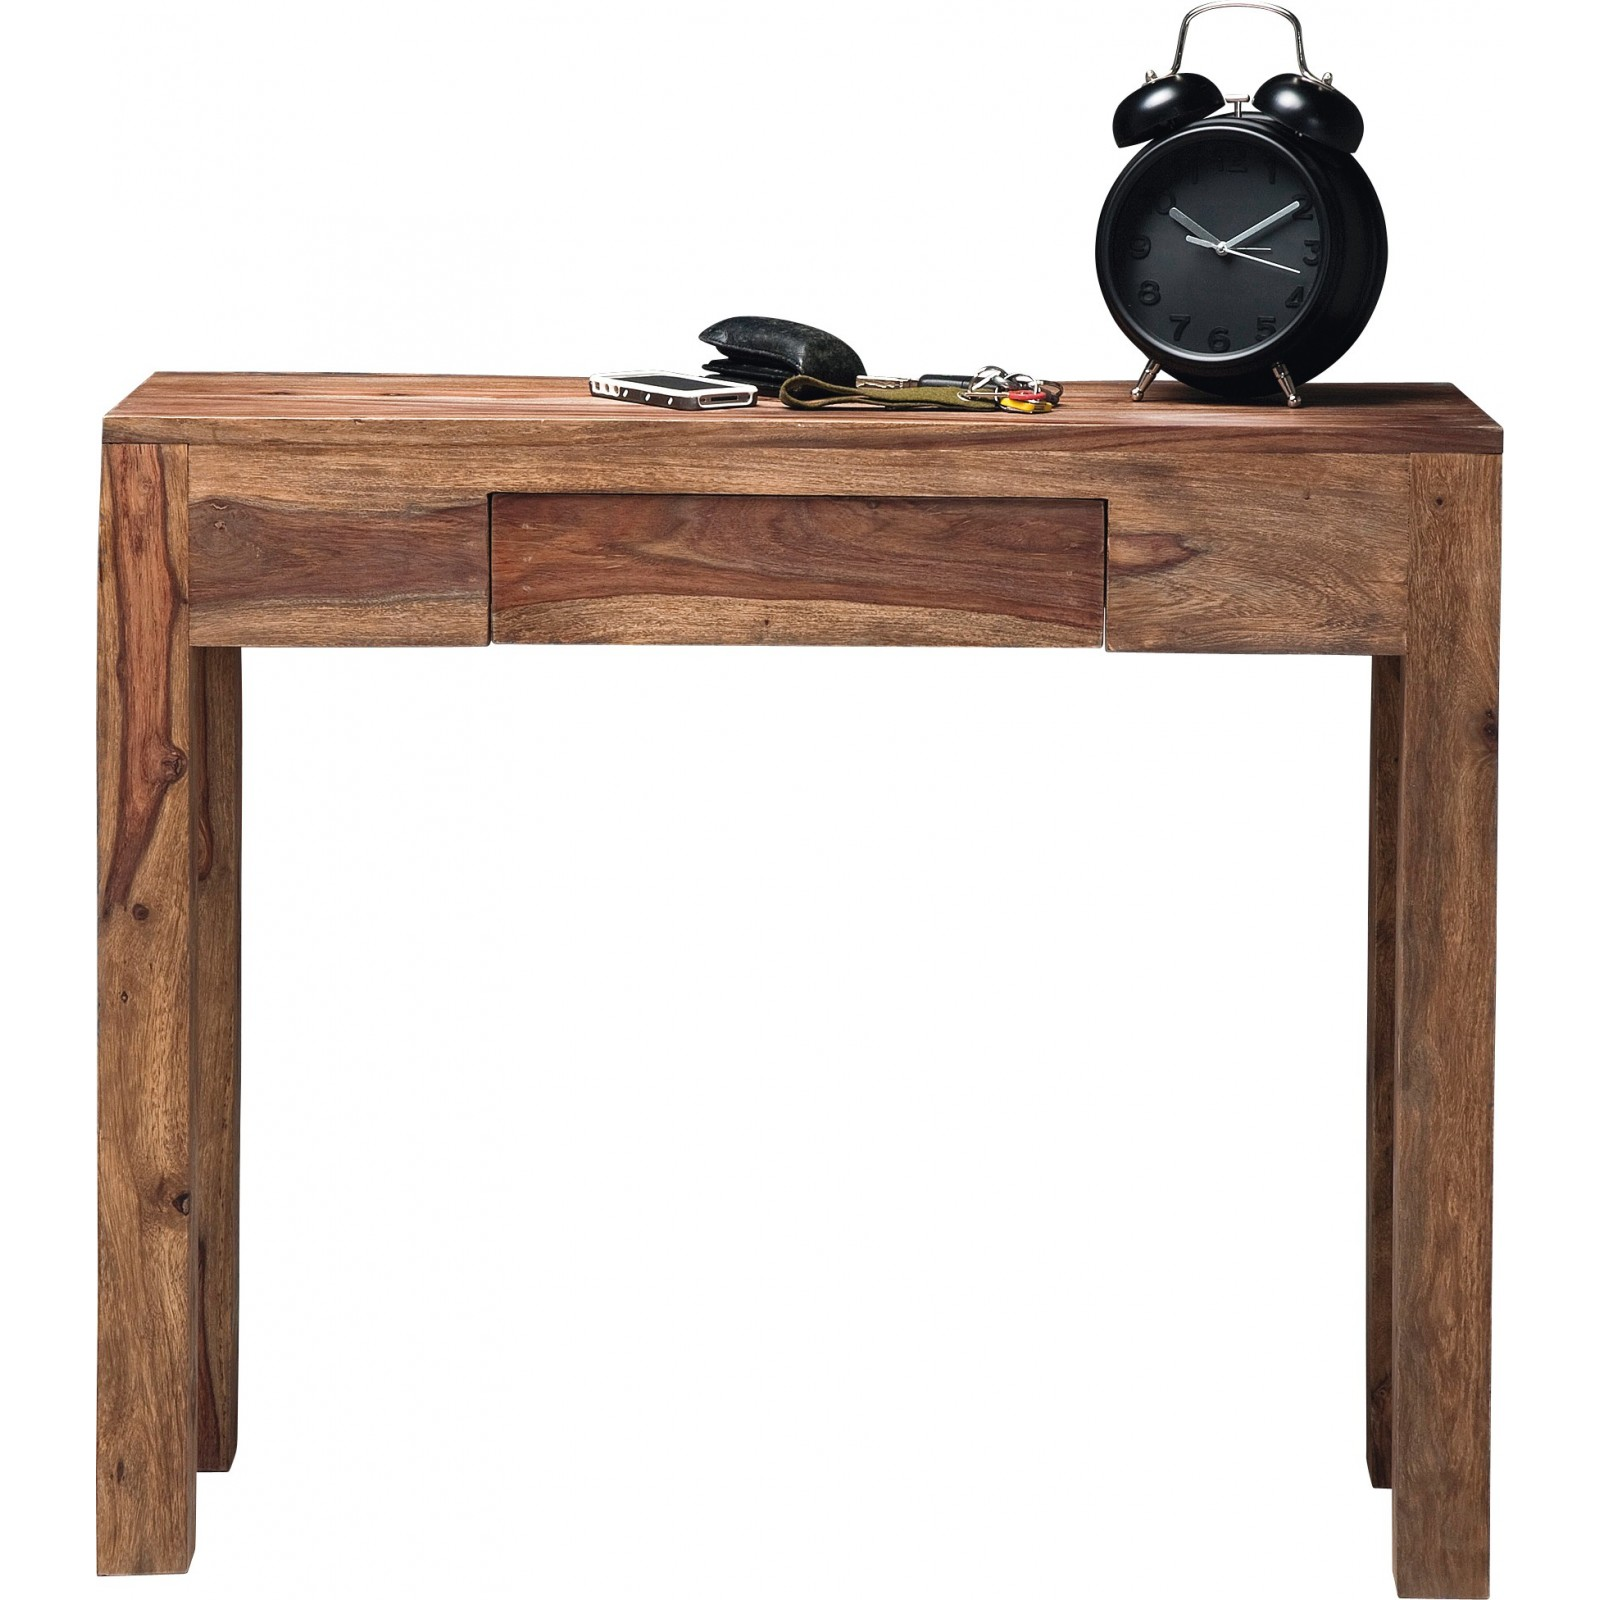 console en bois authentico 90x30cm kare design. Black Bedroom Furniture Sets. Home Design Ideas